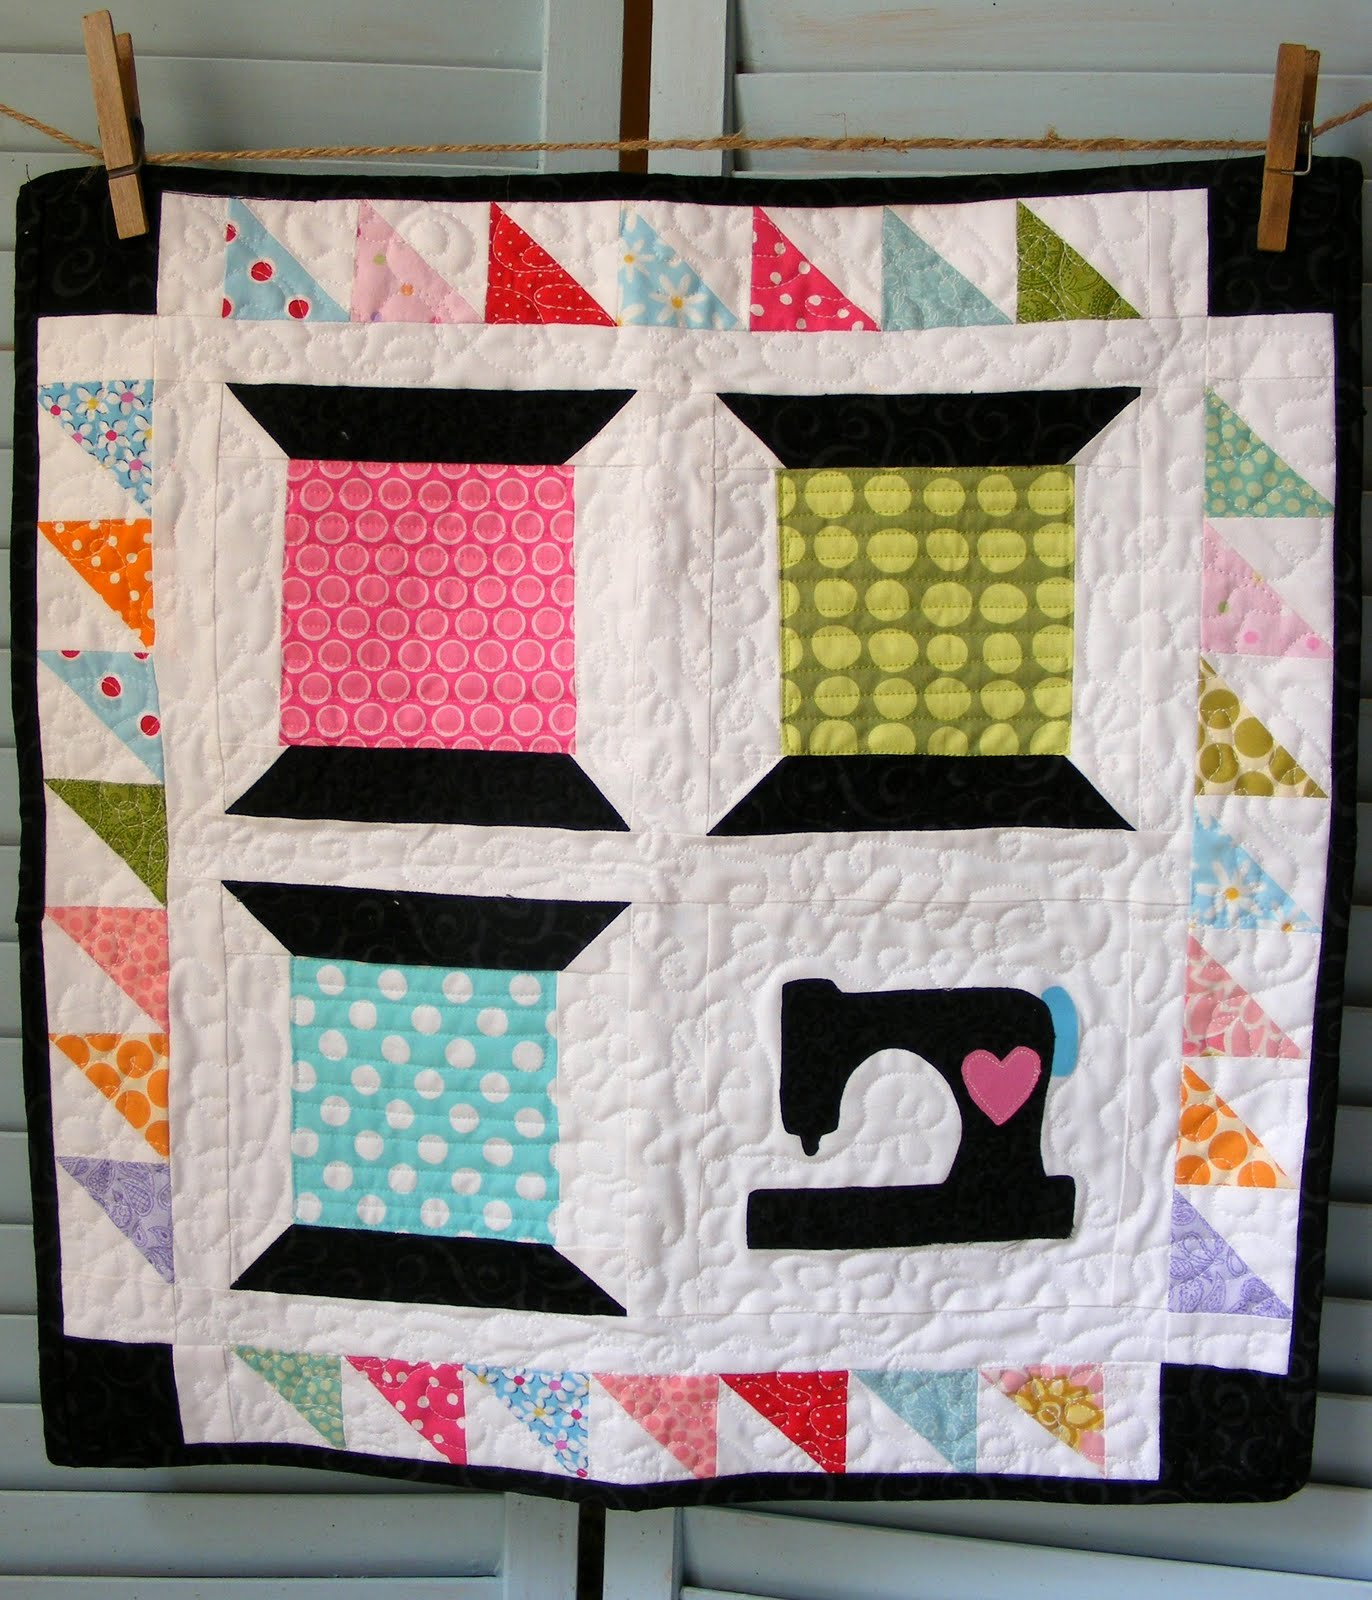 Quilt Pattern Spool of Thread http://www.quiltedcupcake.net/2011/08/sewing-spools-studio-mini-quilt.html